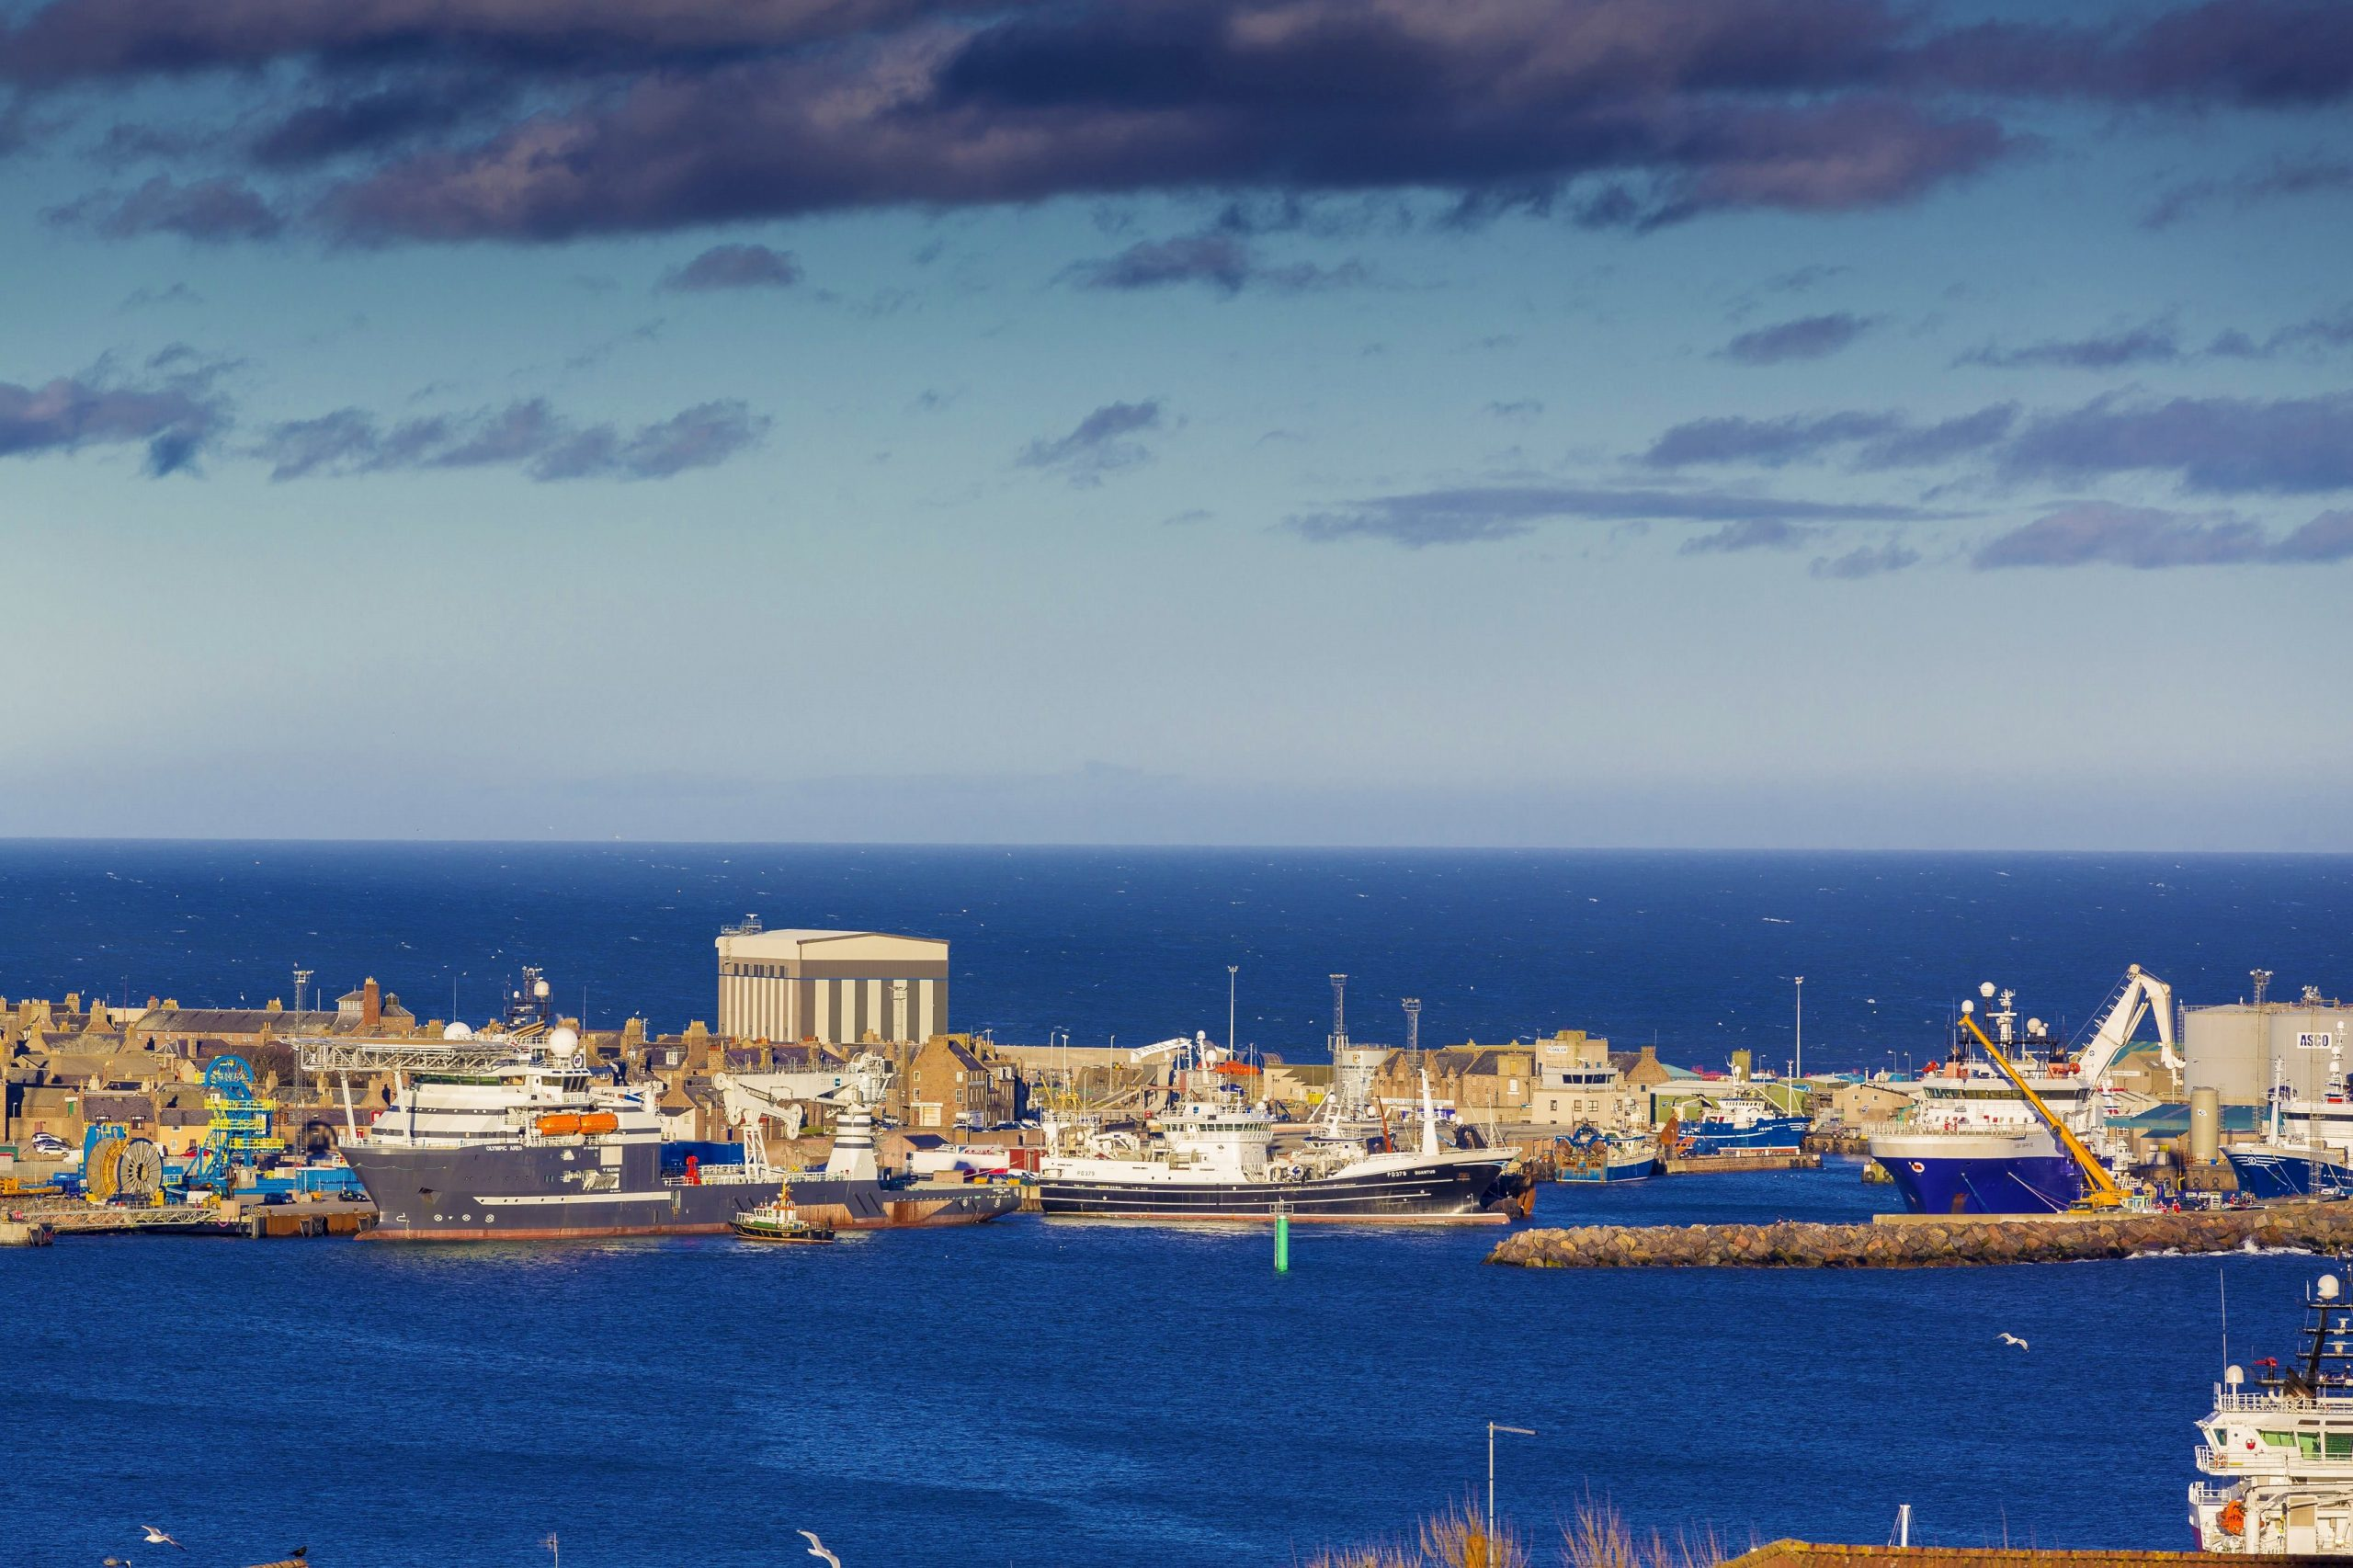 Scottish Commercial Fishing Industry